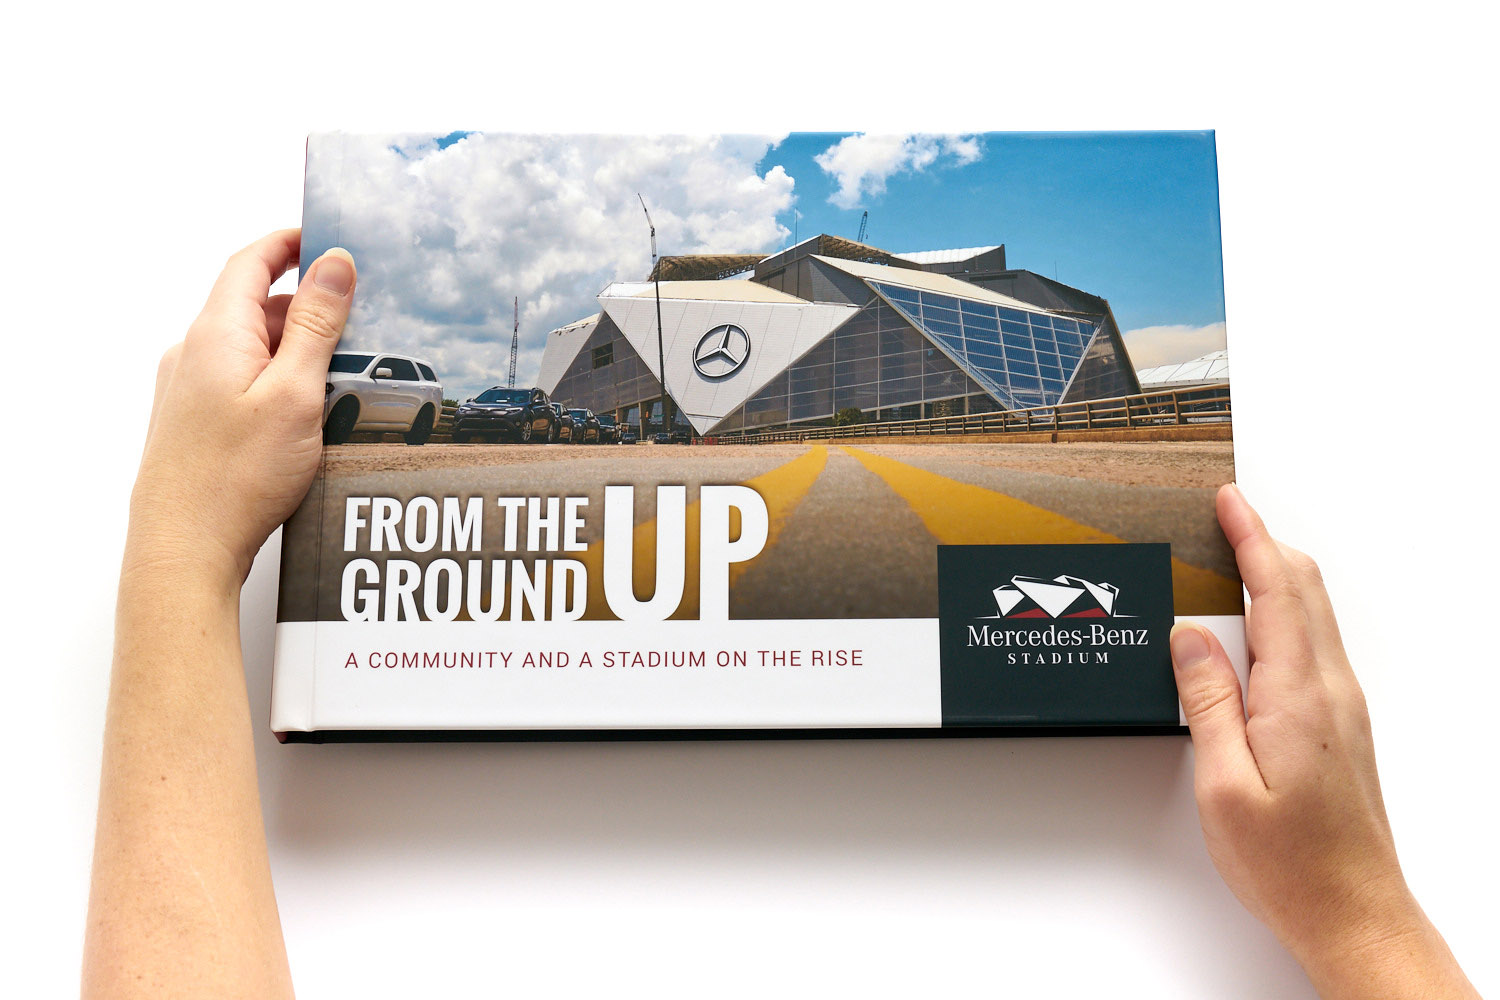 atlanta commercial photography - atlanta advertising photography - hales photo - mercedes benz stadium001.jpg